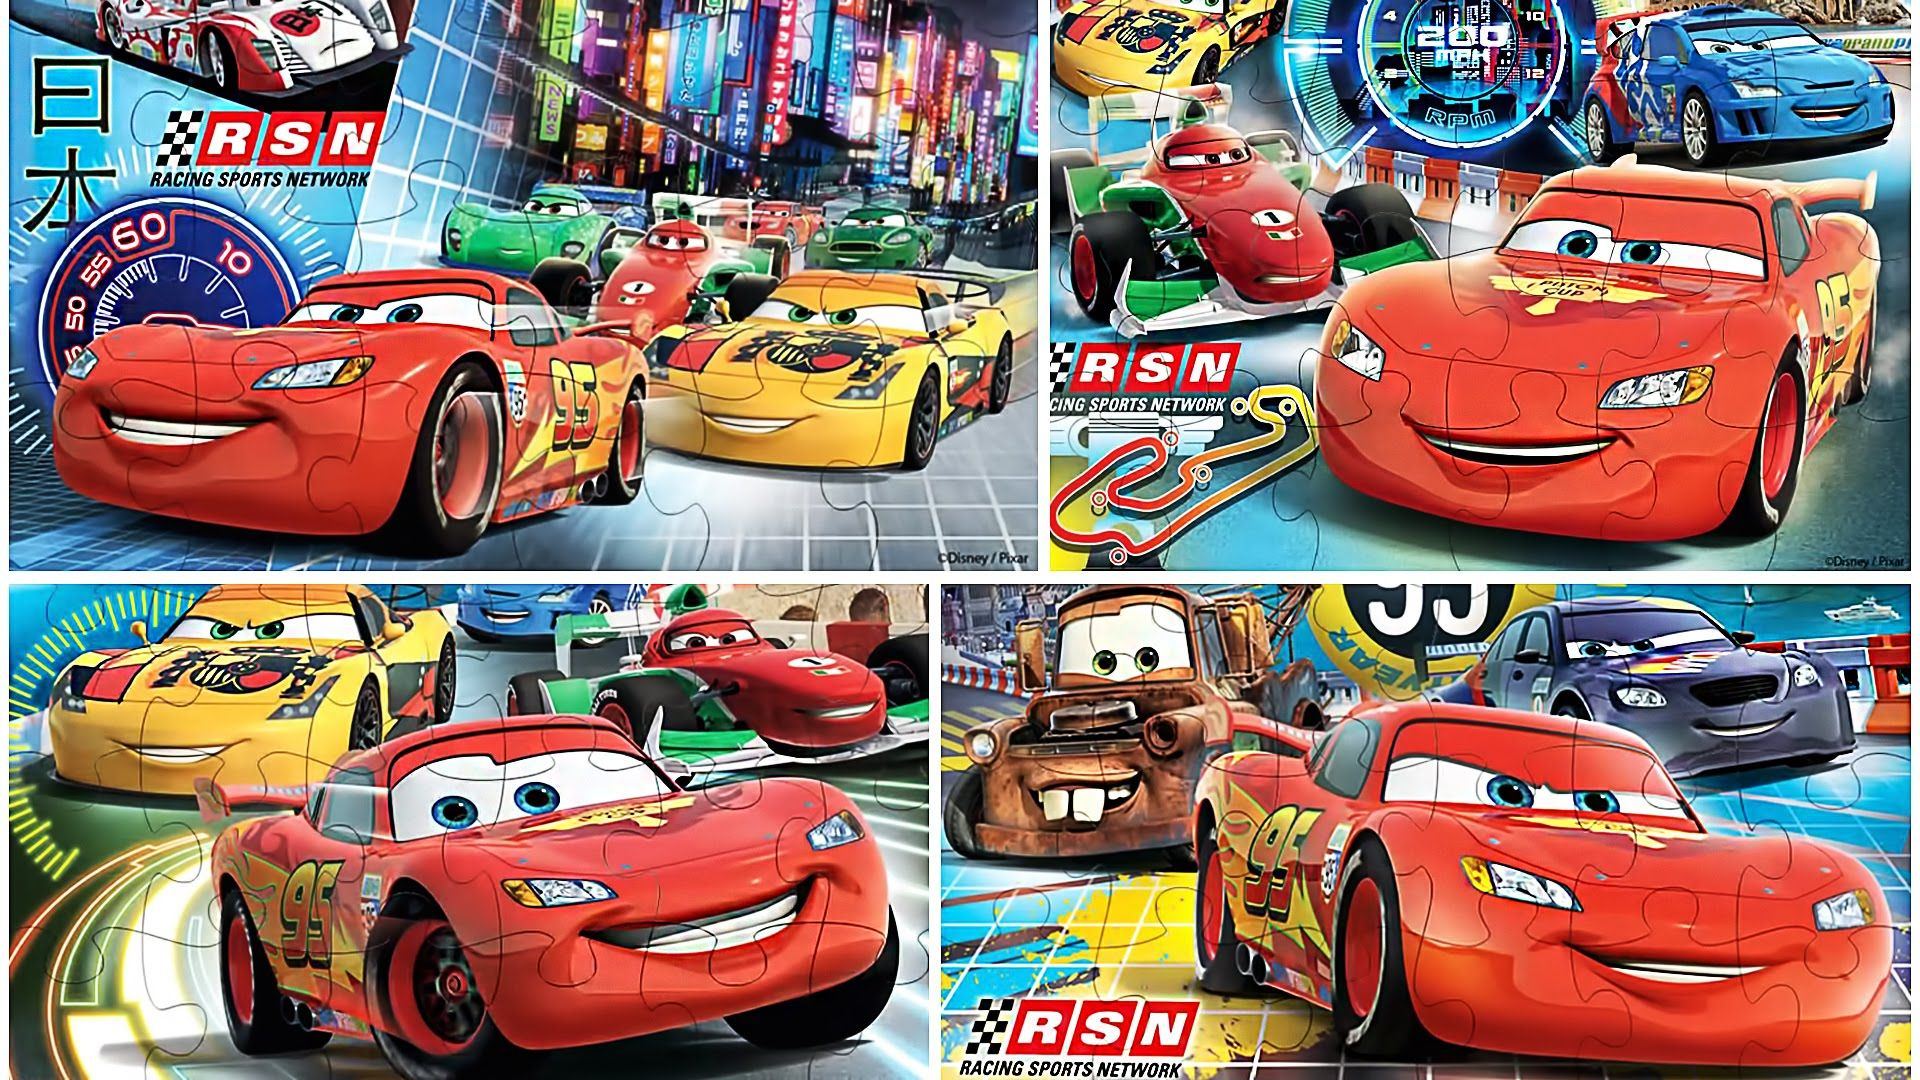 Puzzle App Cars 2 Lightning Mcqueen Cars Puzzles For Toddlers Puzzles For Toddlers Lightning Mcqueen Toddler